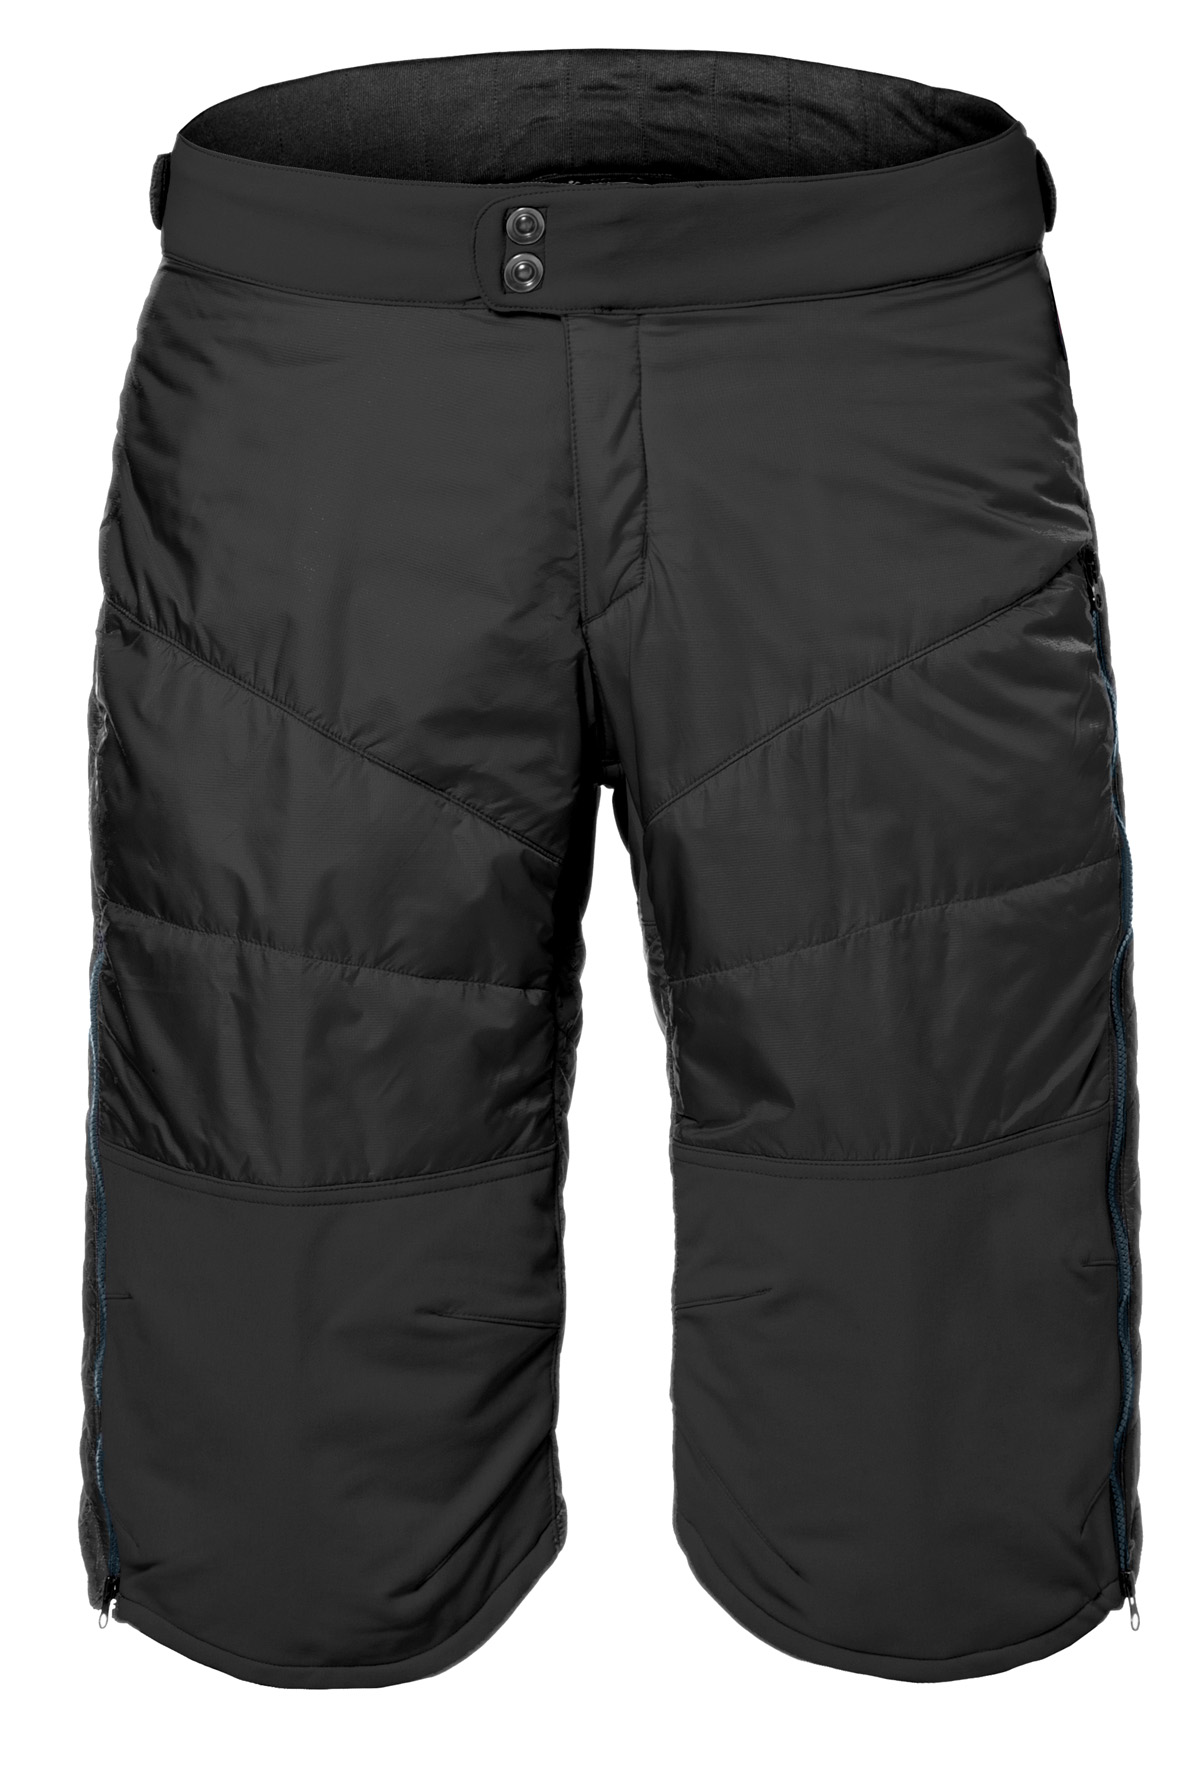 VAUDE Men´s Minaki Shorts black Größe XXL - schneider-sports